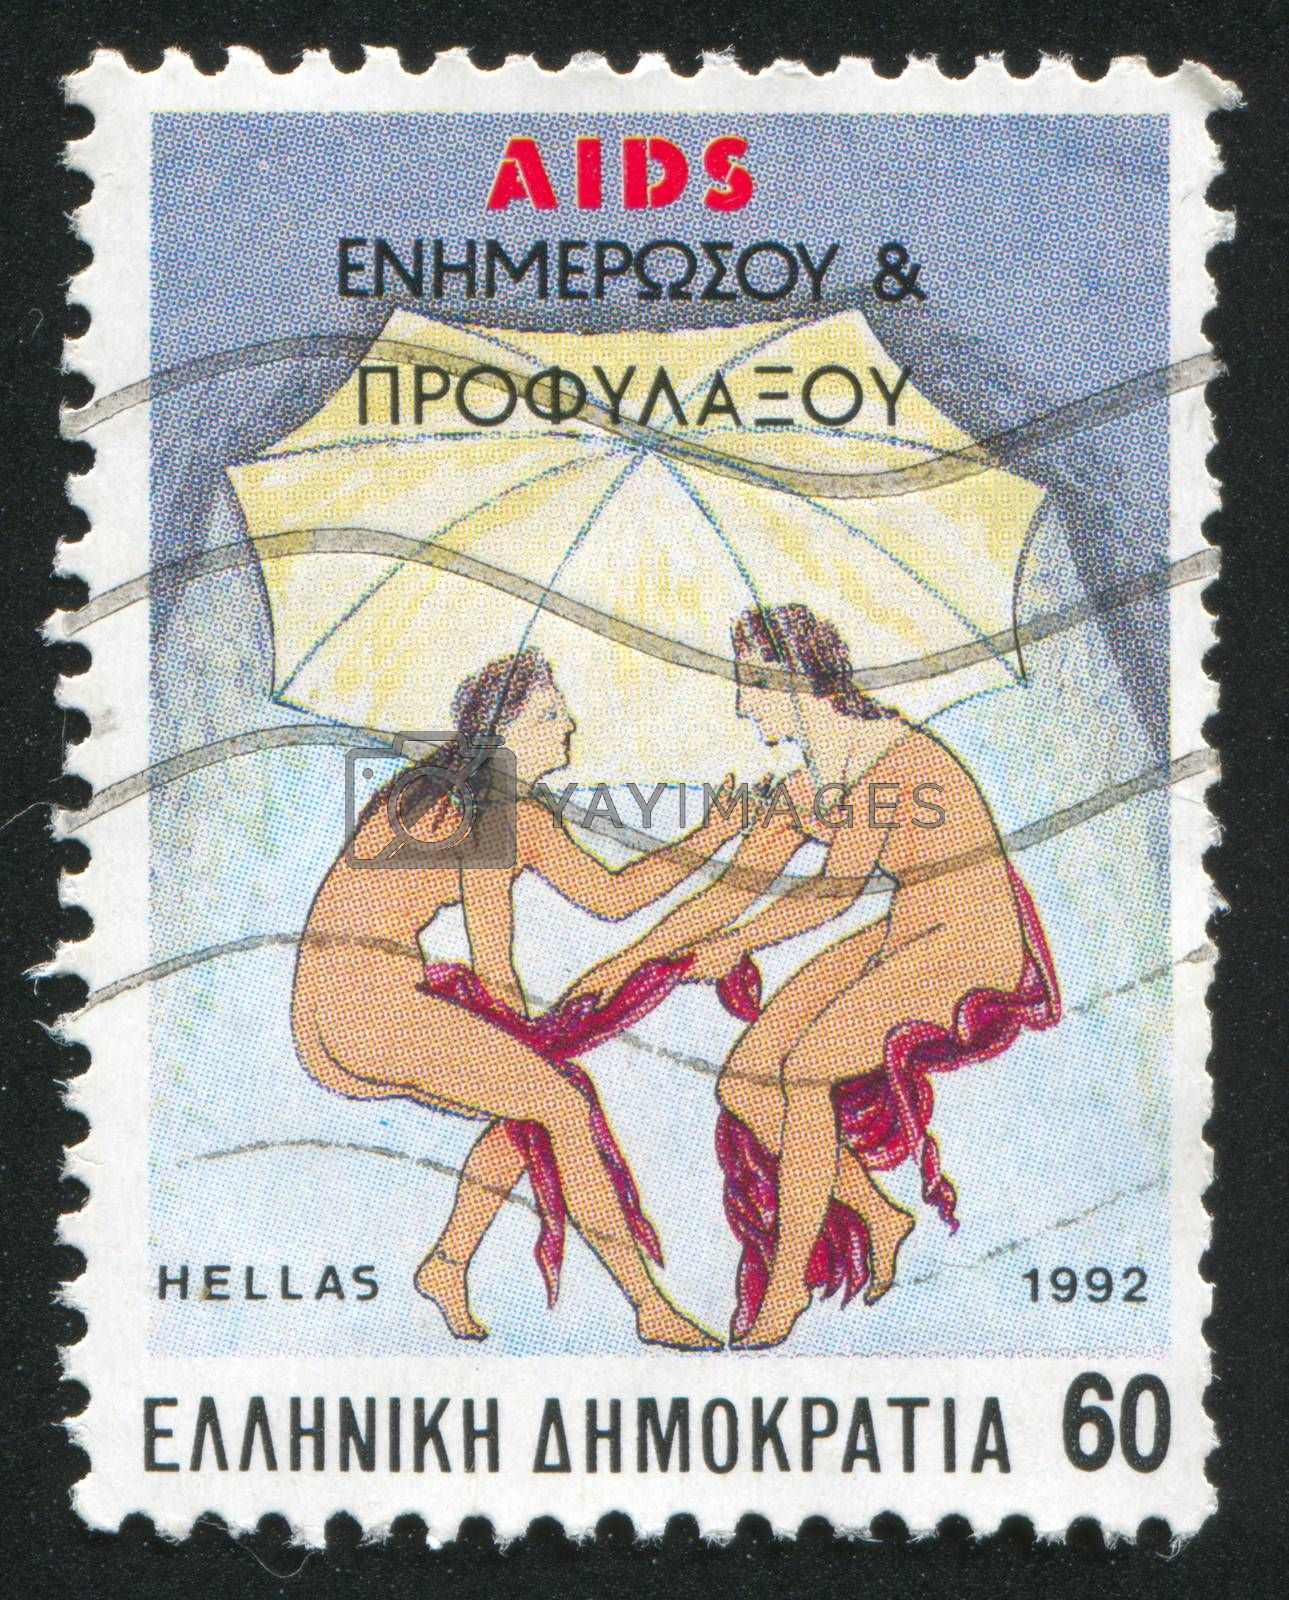 GREECE - CIRCA 1992: stamp printed by Greece, shows Protection against AIDS, circa 1992